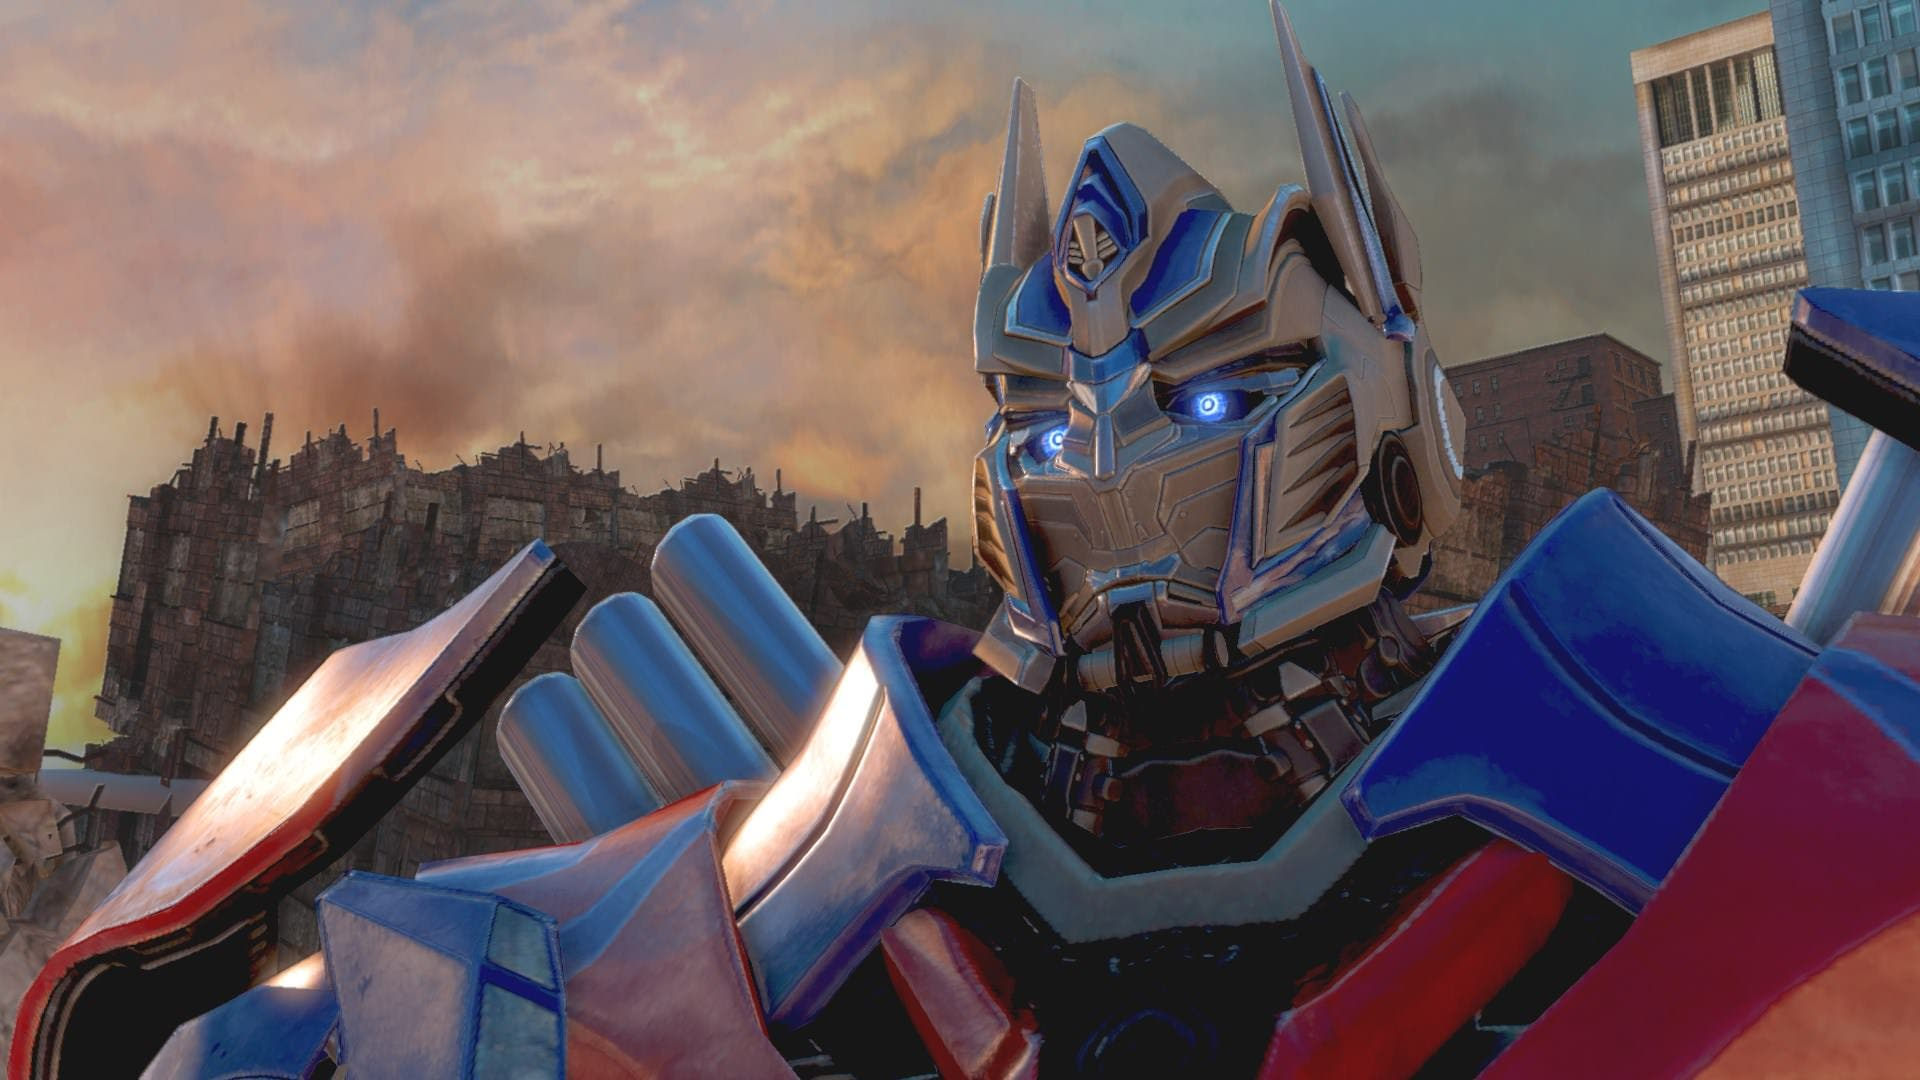 Nuevo tráiler de 'Transformers: Day of the Dark Spark'